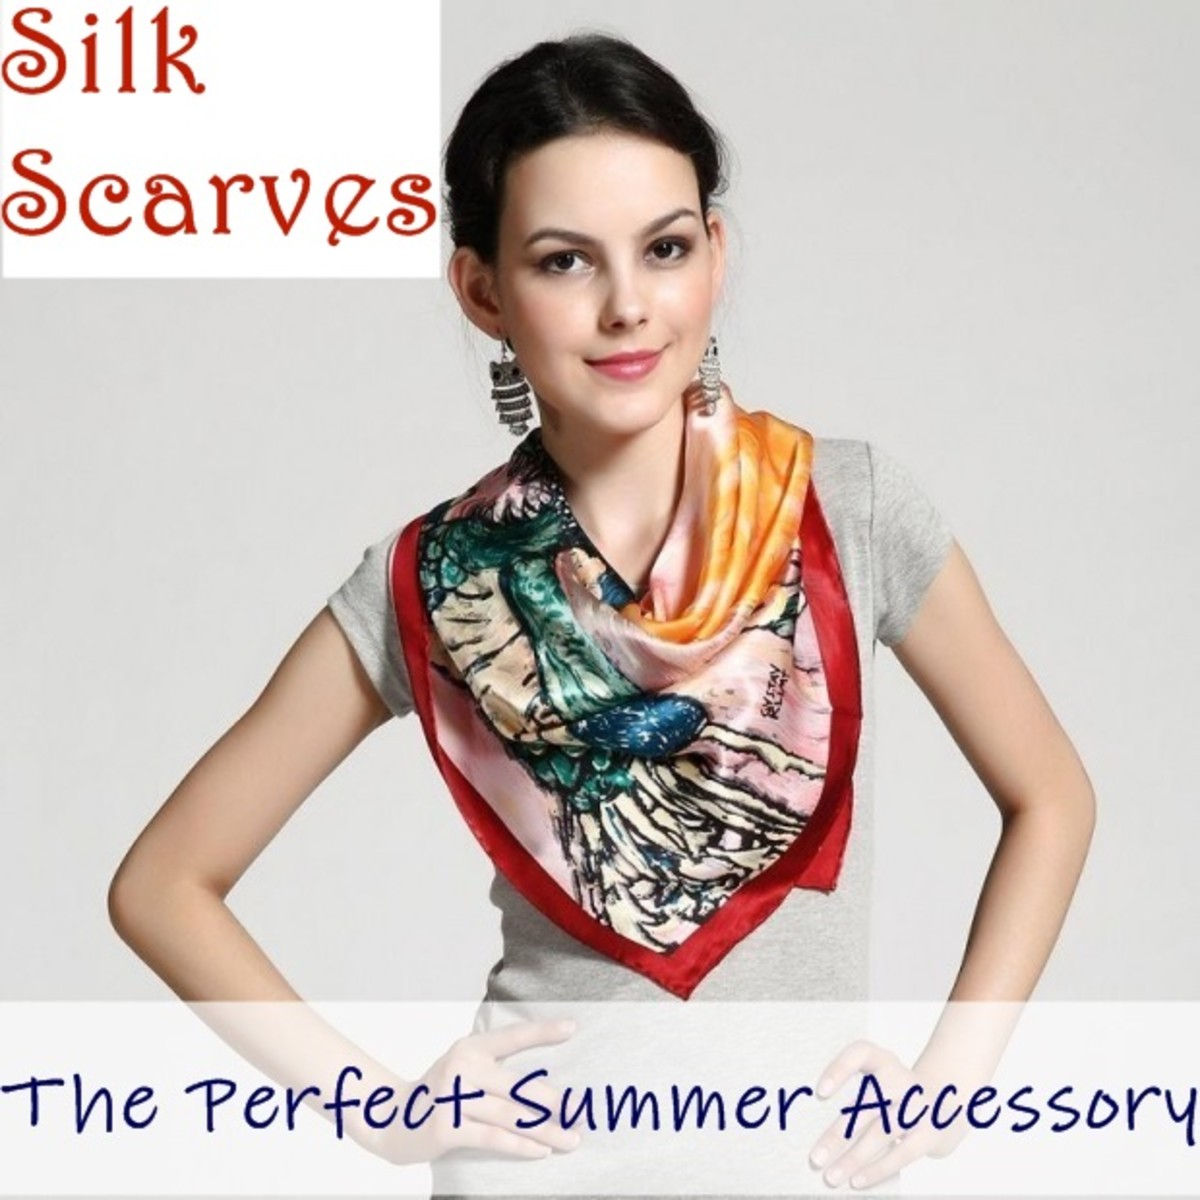 Summer scarves are a practical and perfect accessory for any summer heat. Learn how to wear them and where to buy the best!